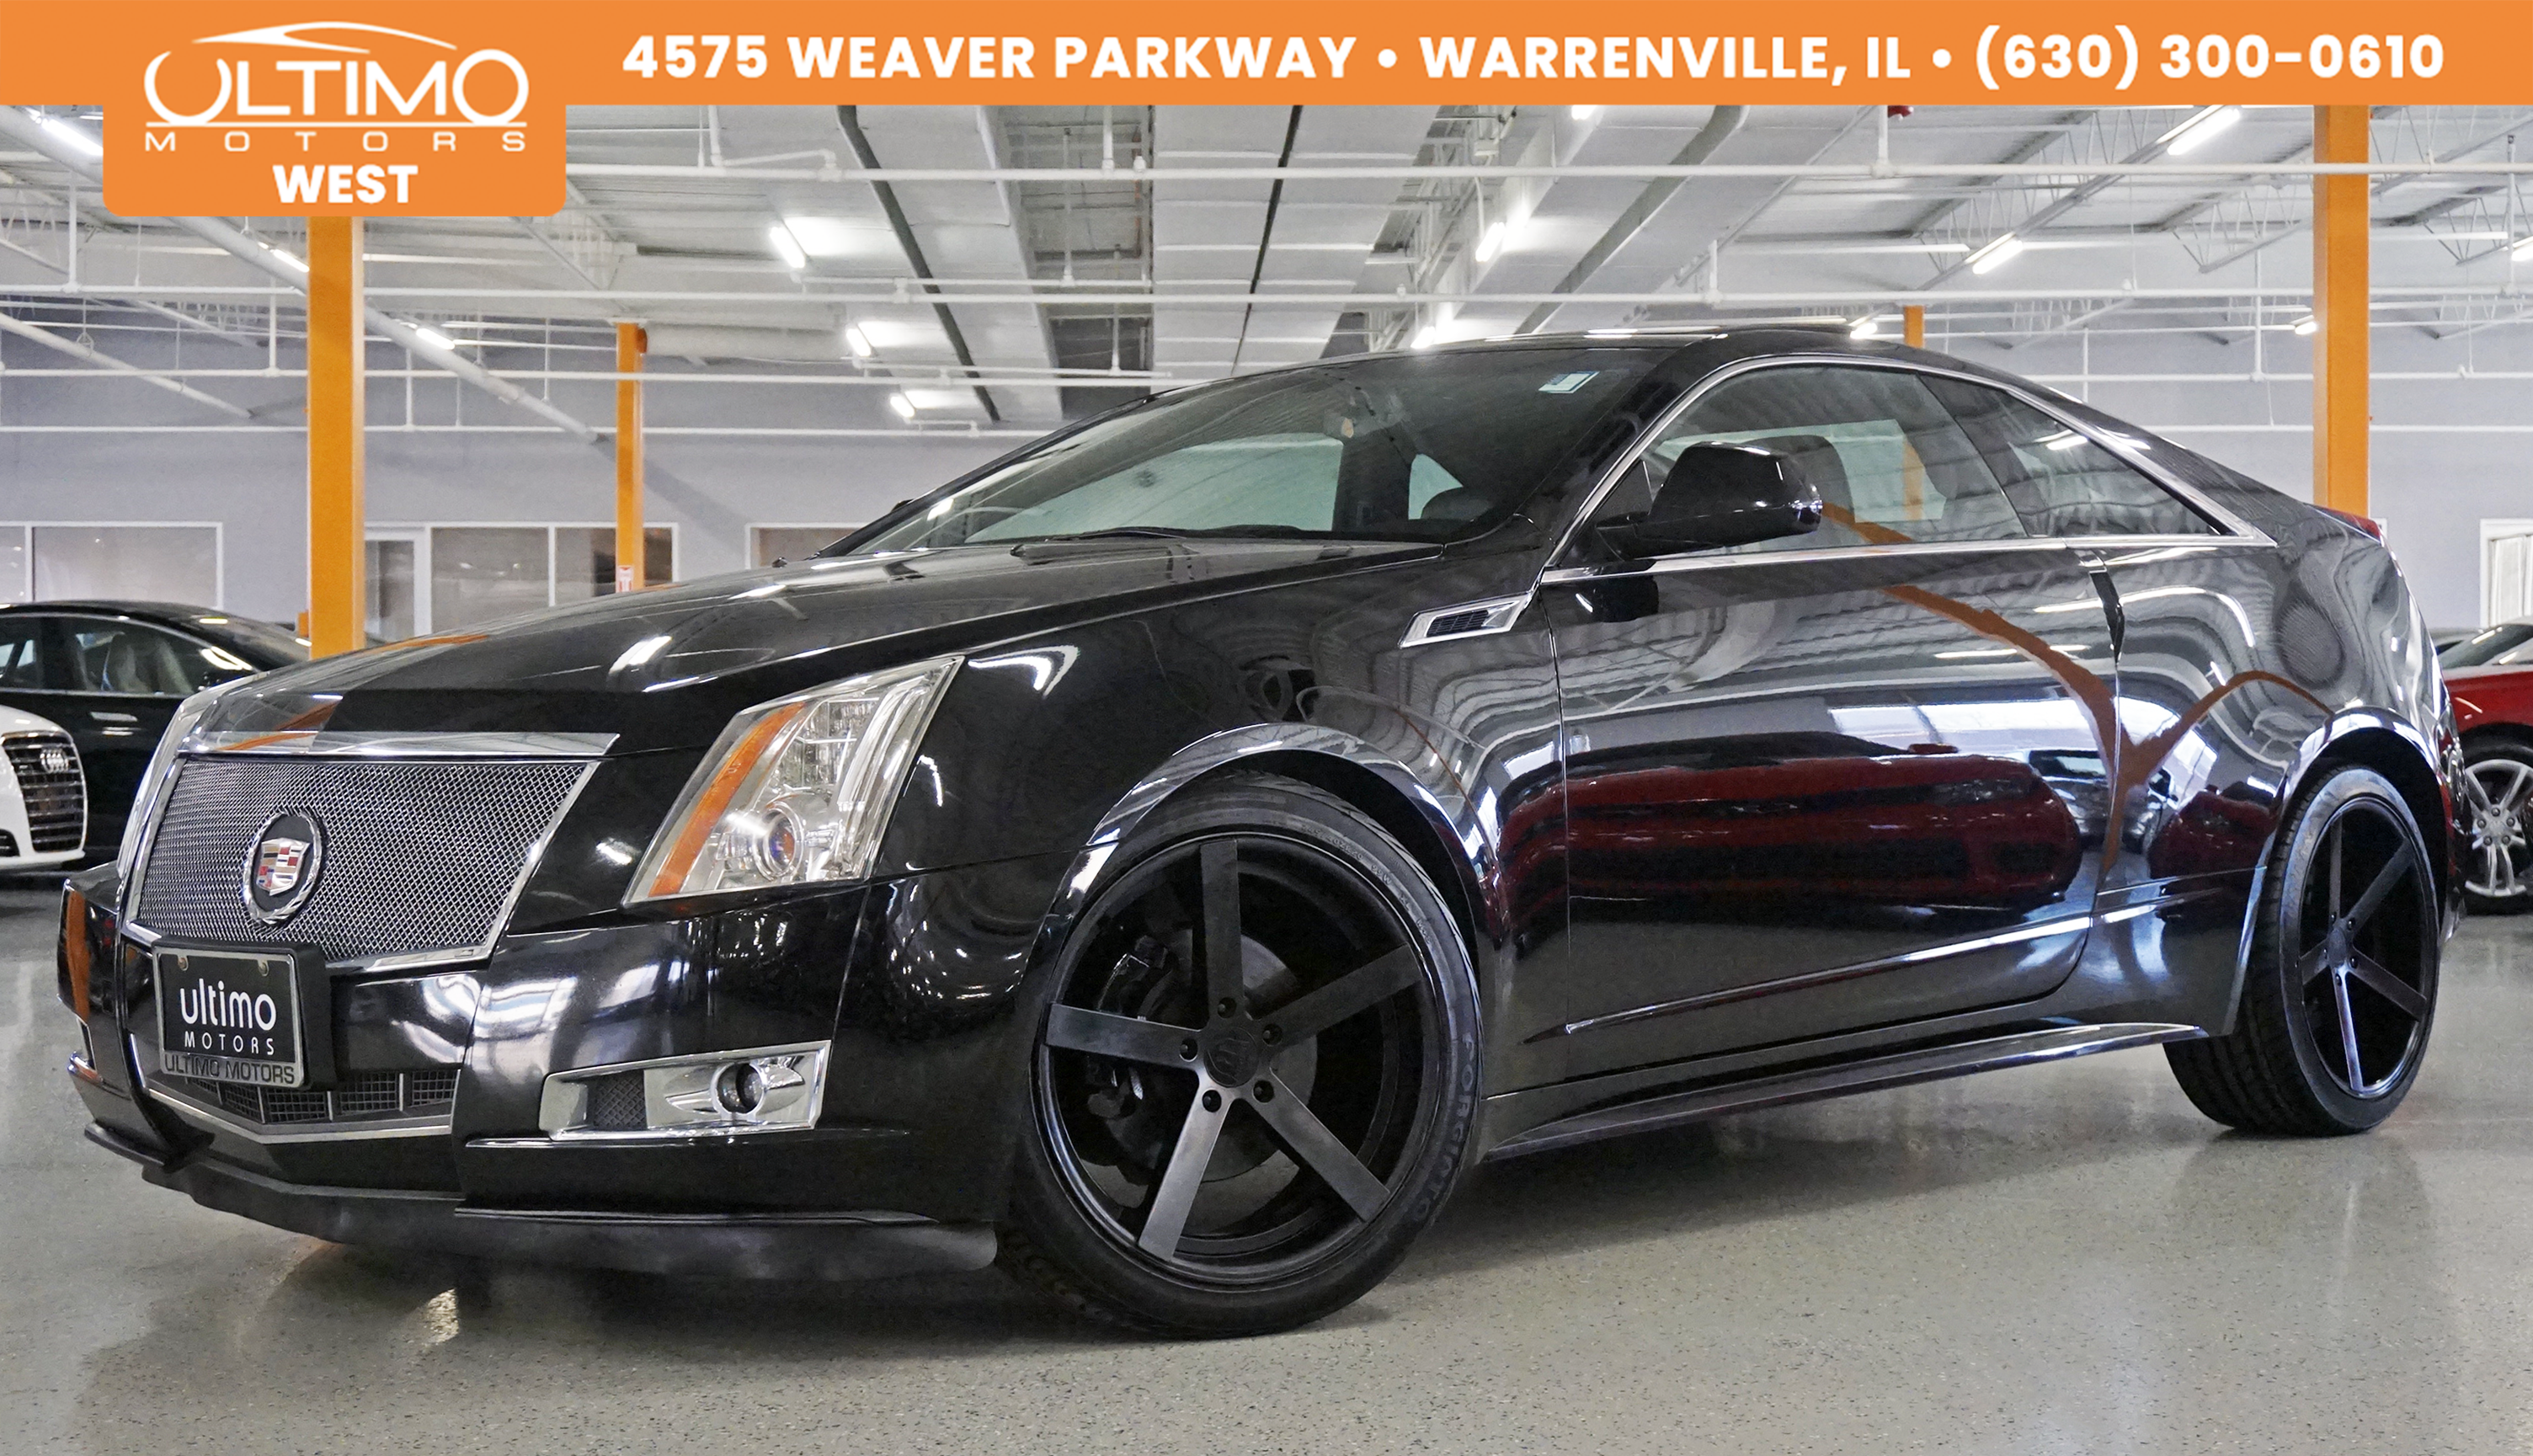 Pre-Owned 2011 Cadillac CTS Coupe Premium, Navi, Rear Camera, Heated & Ventilated Seats